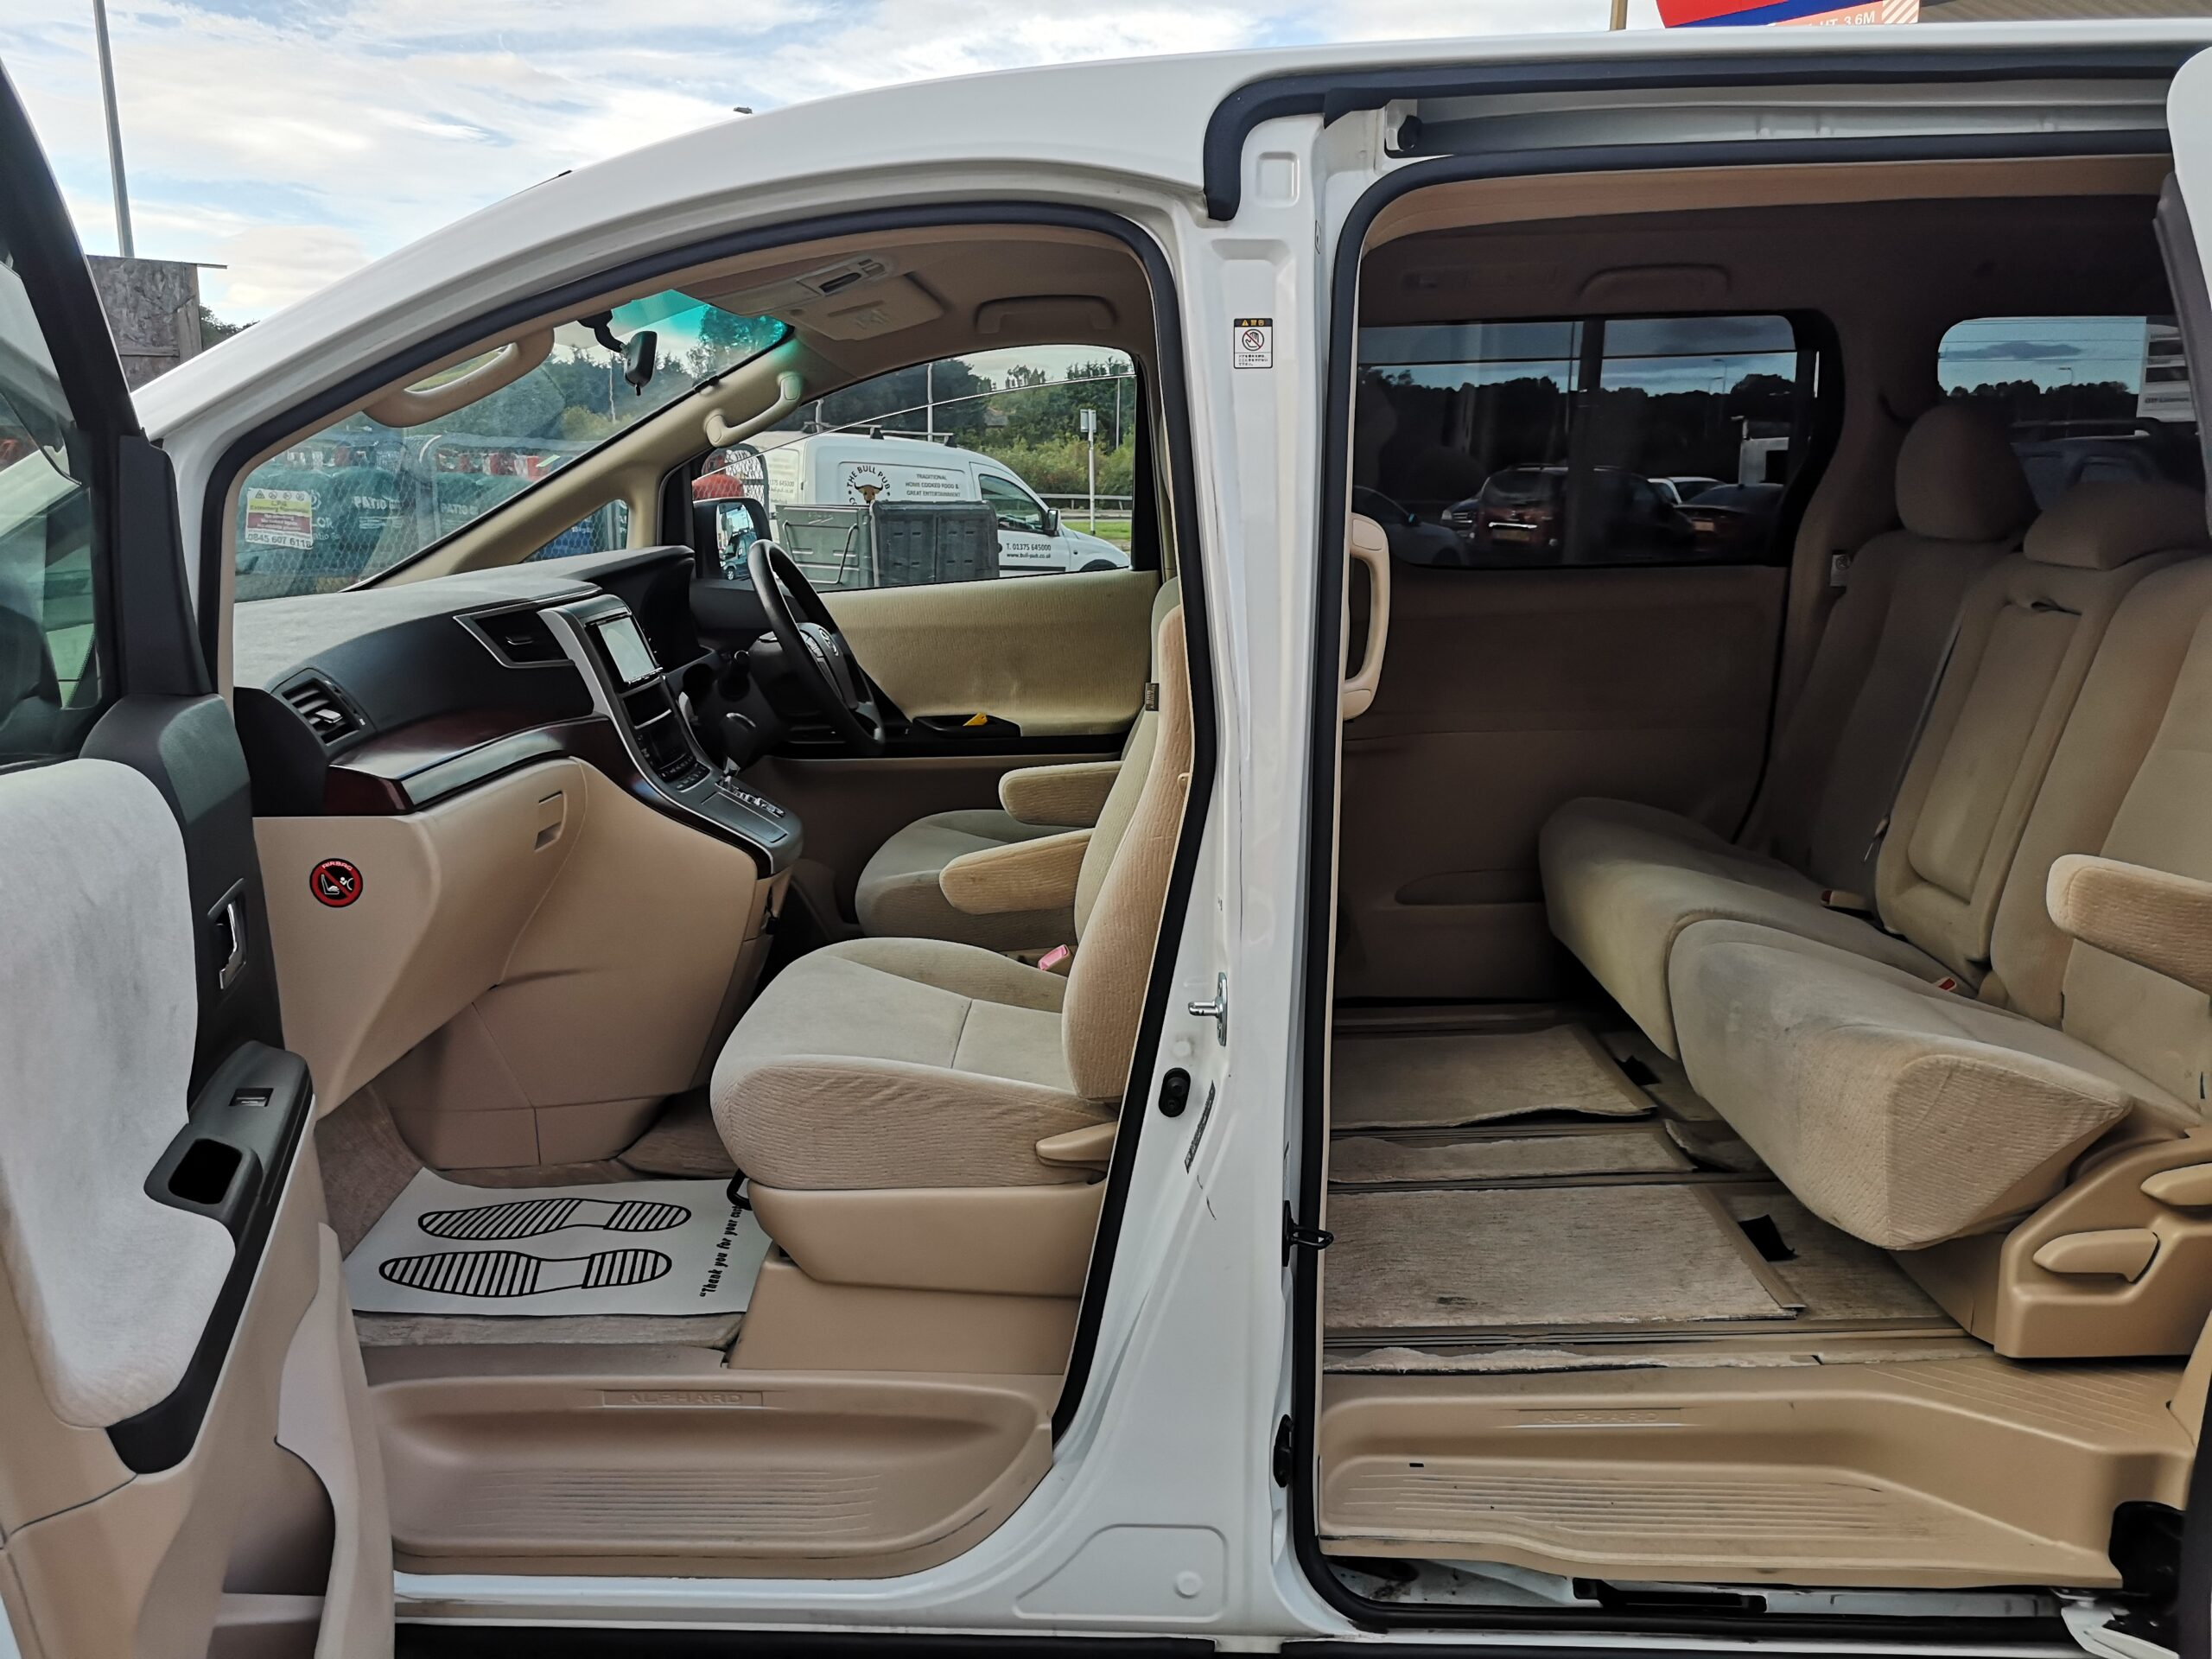 TOYOTA ALPHARD 2.4 PETROL FACE LIFT 2008(08) FINANCE AVAILABLE,8 SEATERS